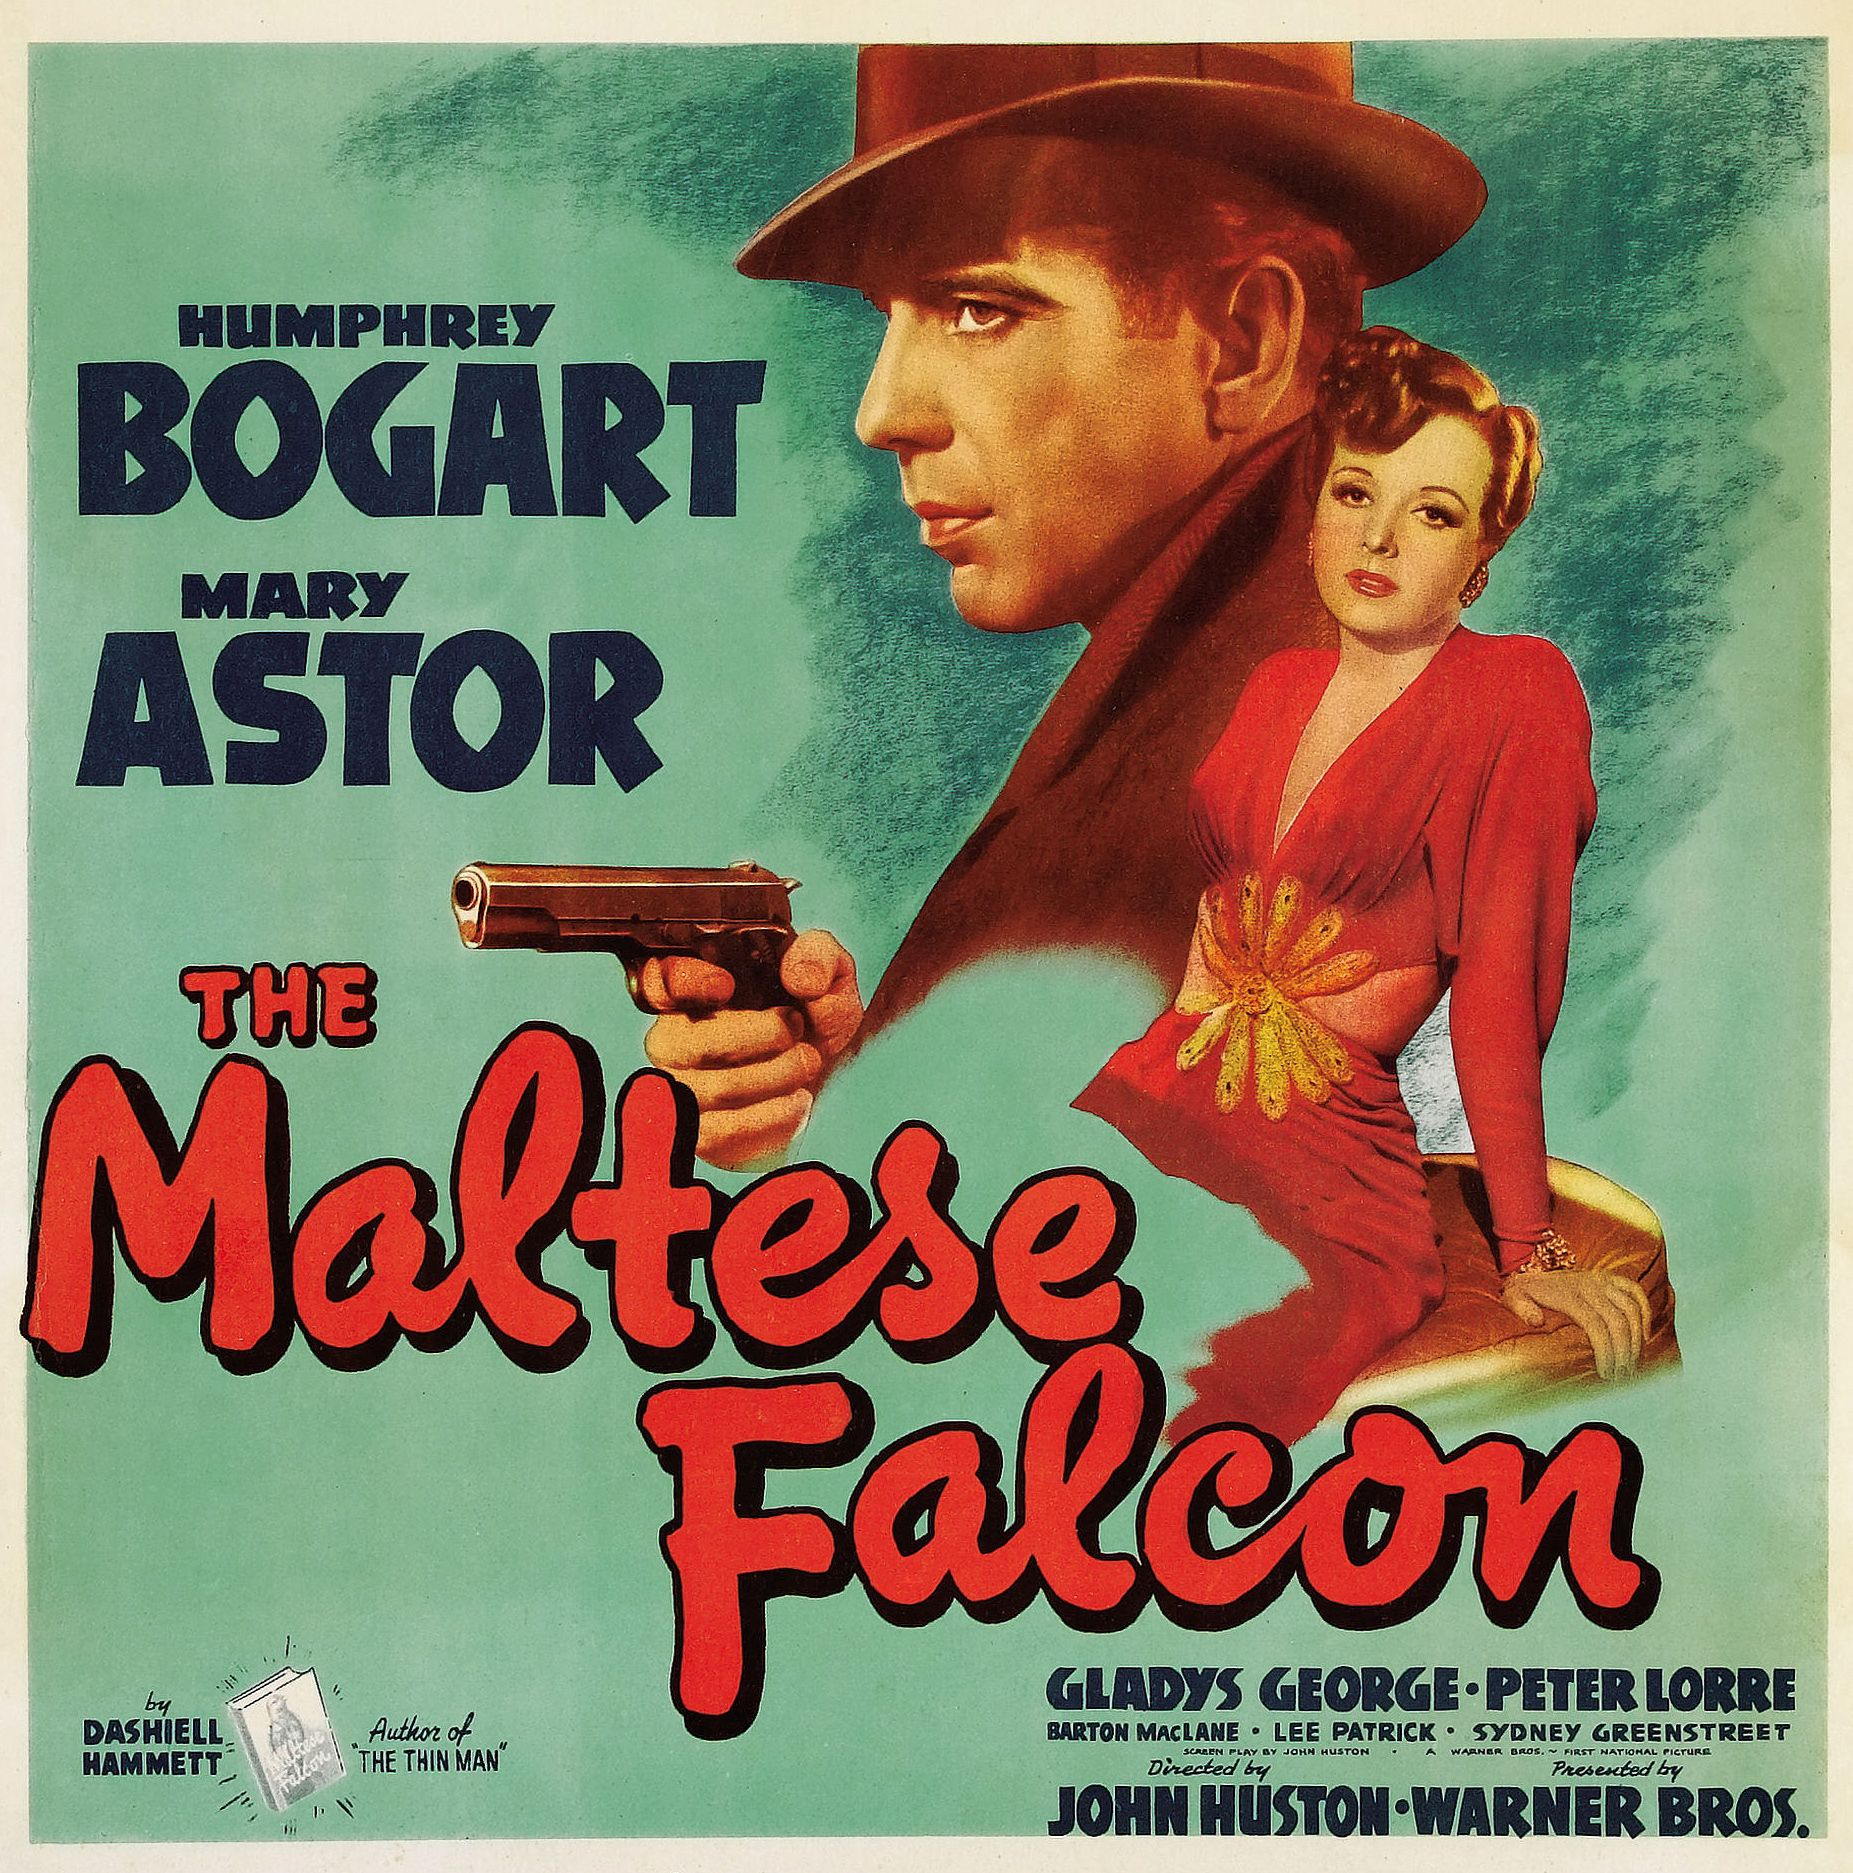 Humphrey Bogart In The Maltese Falcon 1941 Old Movie Quotes Beautiful Film Movie Quotes